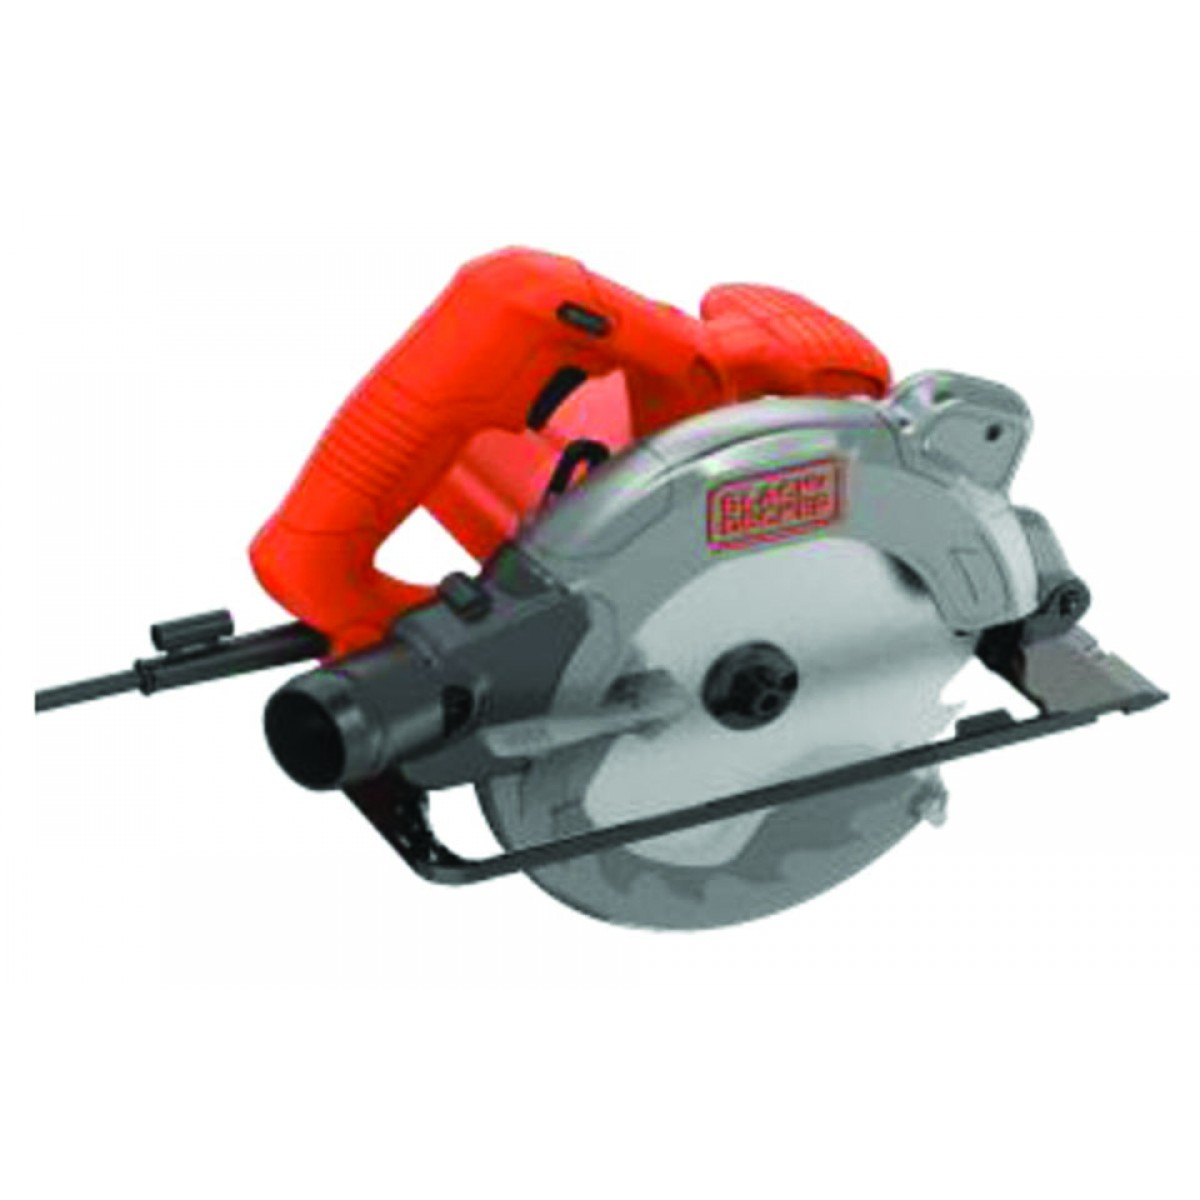 Black decker cs1250l 240v circular saw 190mm blade howe tools uk black decker cs1250l greentooth Choice Image